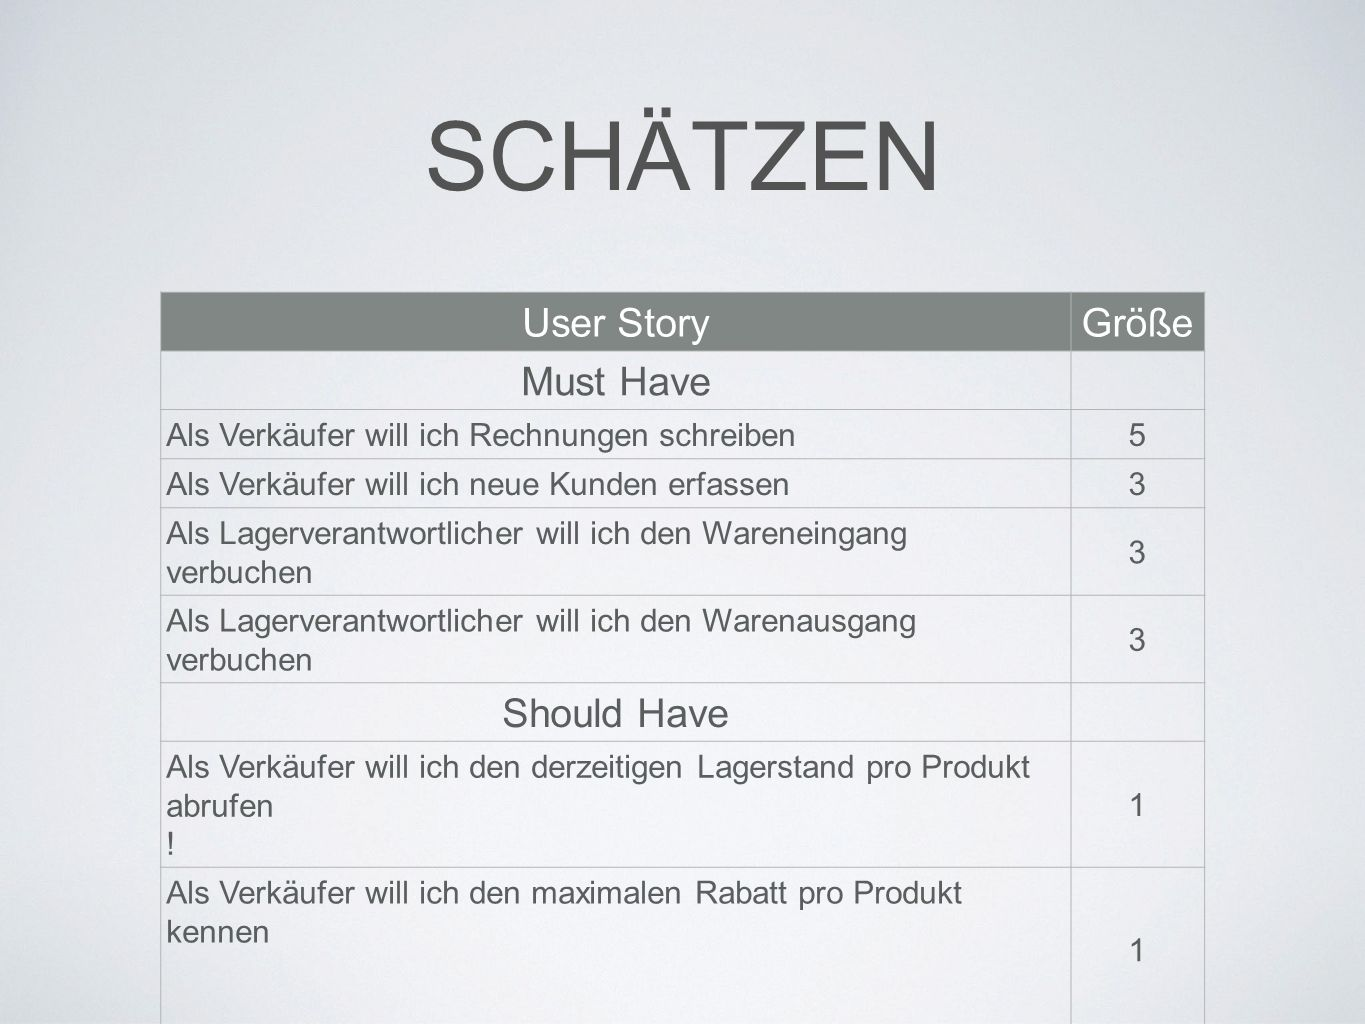 SCHÄTZEN User Story Größe Must Have Should Have